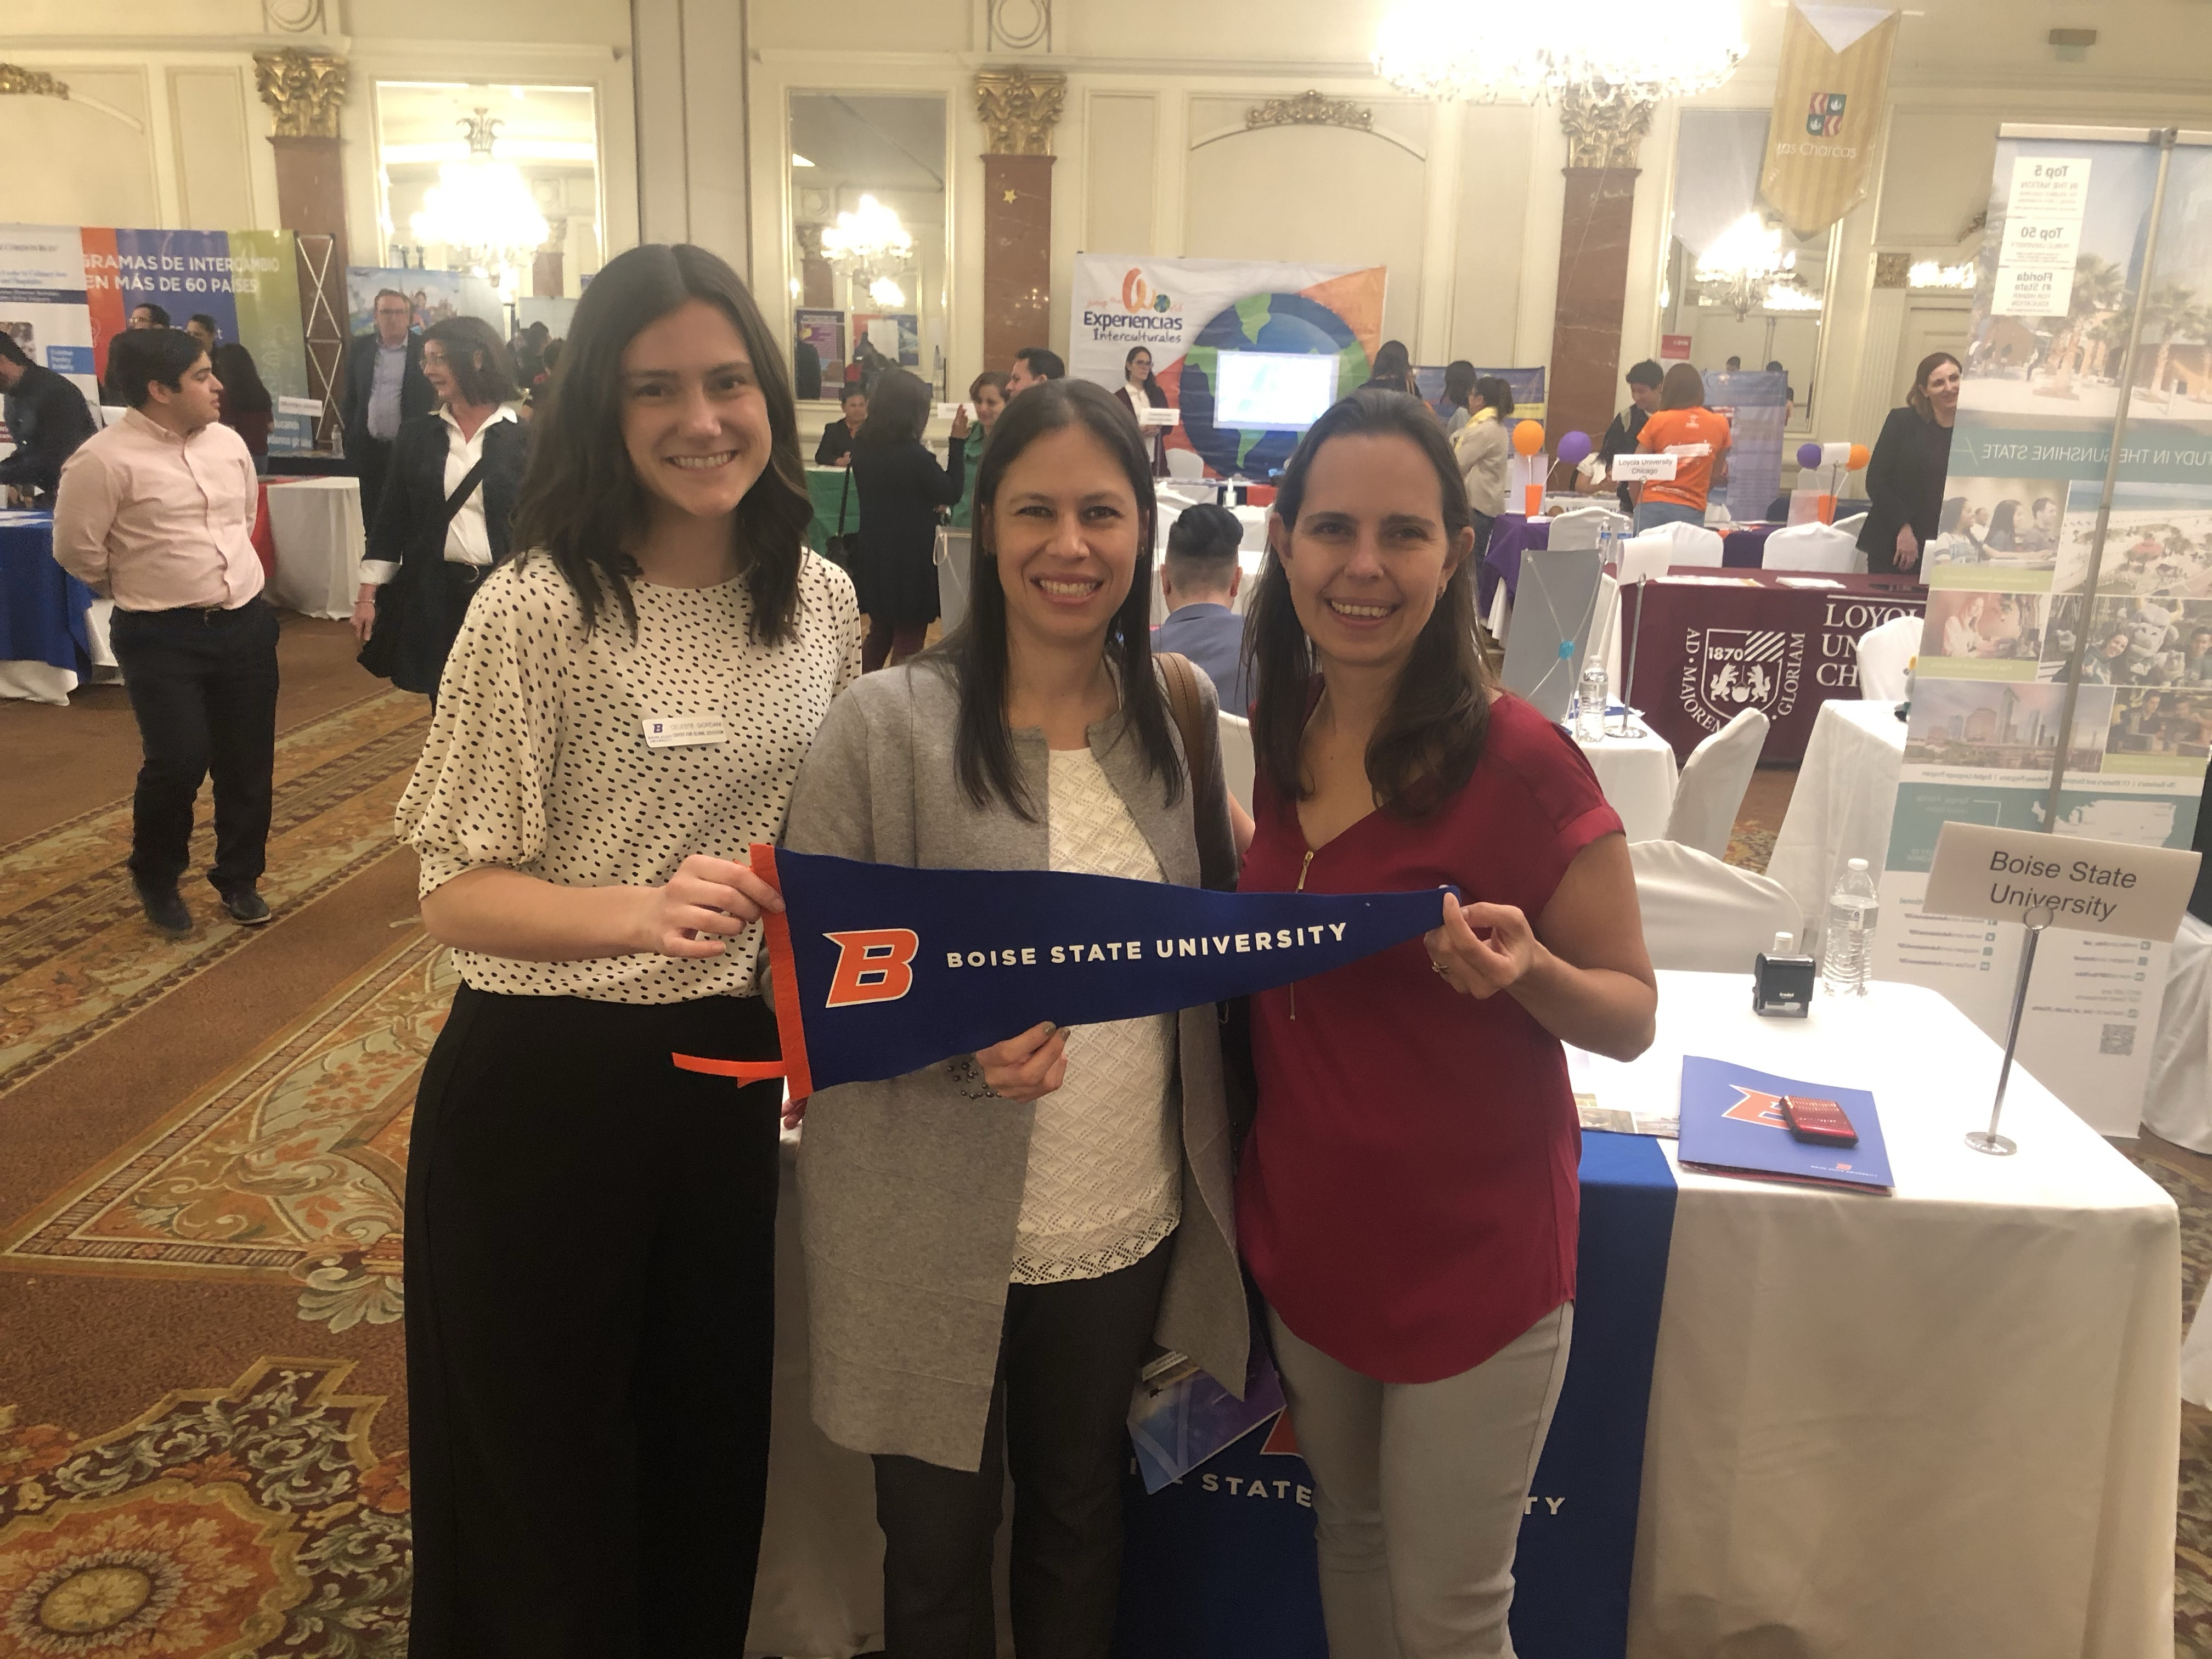 Three women standing side by side holding Boise State banner